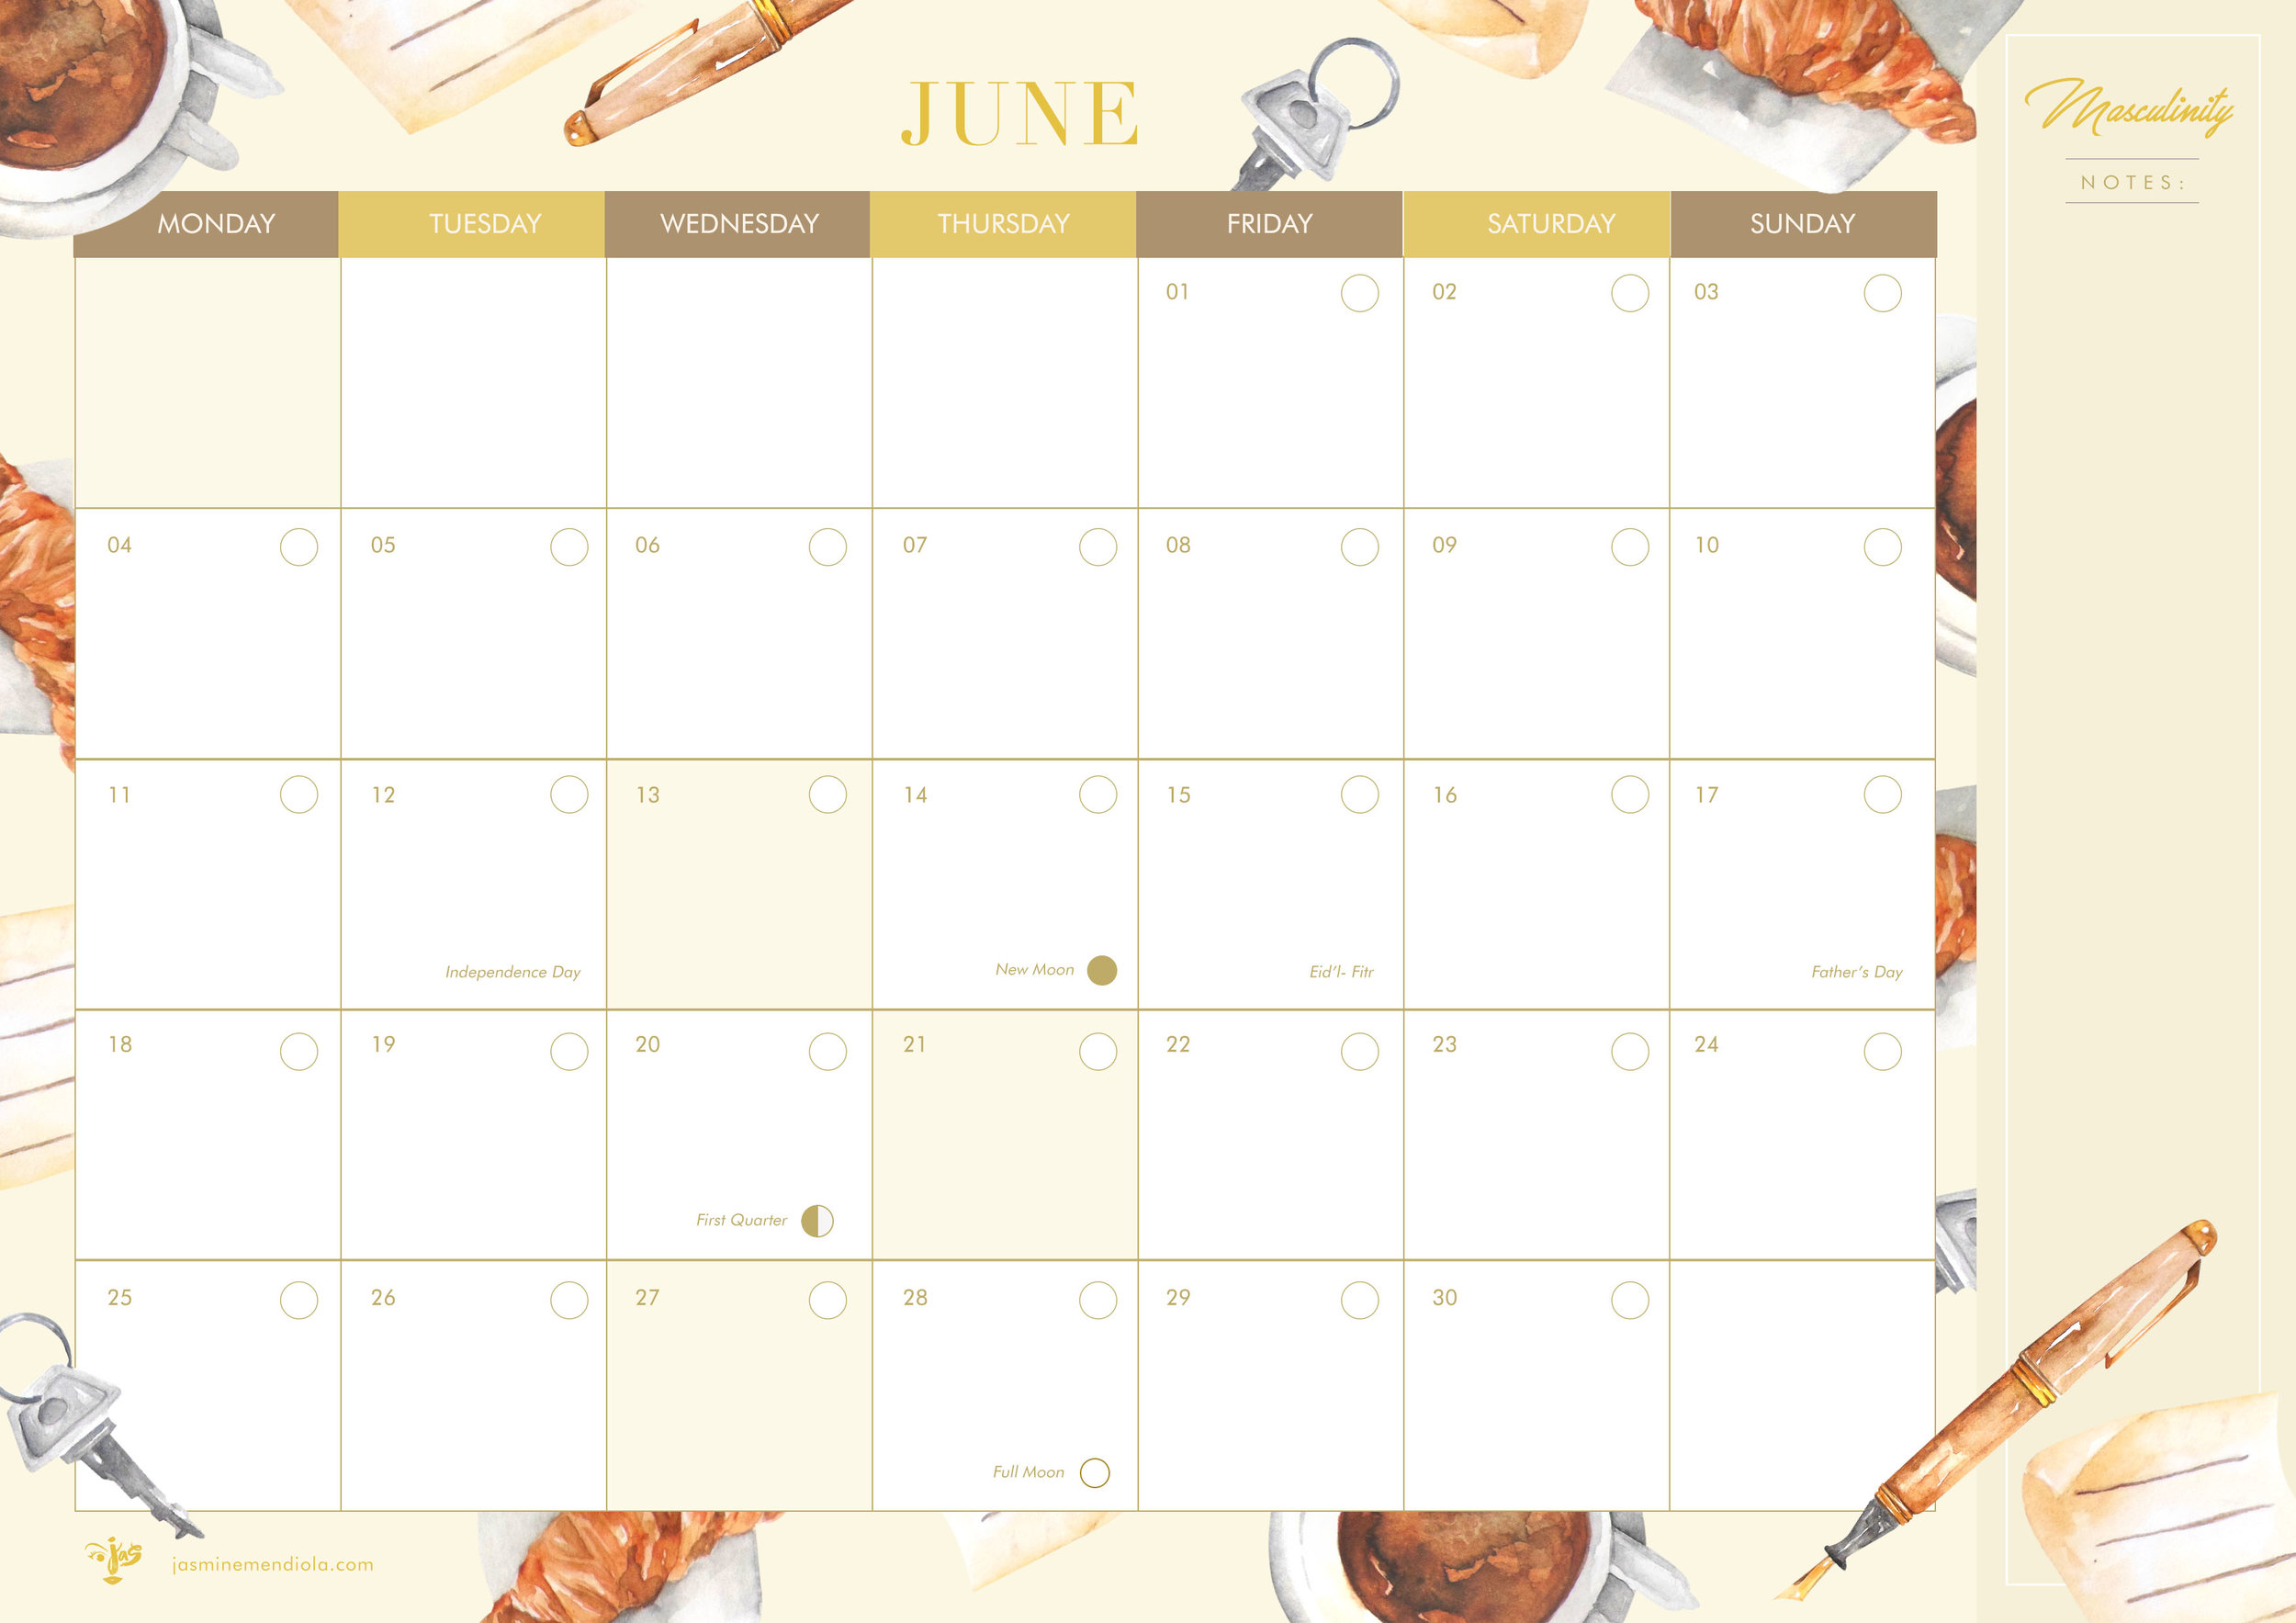 The June calendar features masculine elements drawn and painted by talented Sab Palmares who does most of my artworks. This is in honor of Father's Day. All my calendars feature the new and full moon along with the Christian and Philippine Holidays and a note-taking area on the right. Click the image below to put this in your cart for the rest of the month's reminders :)